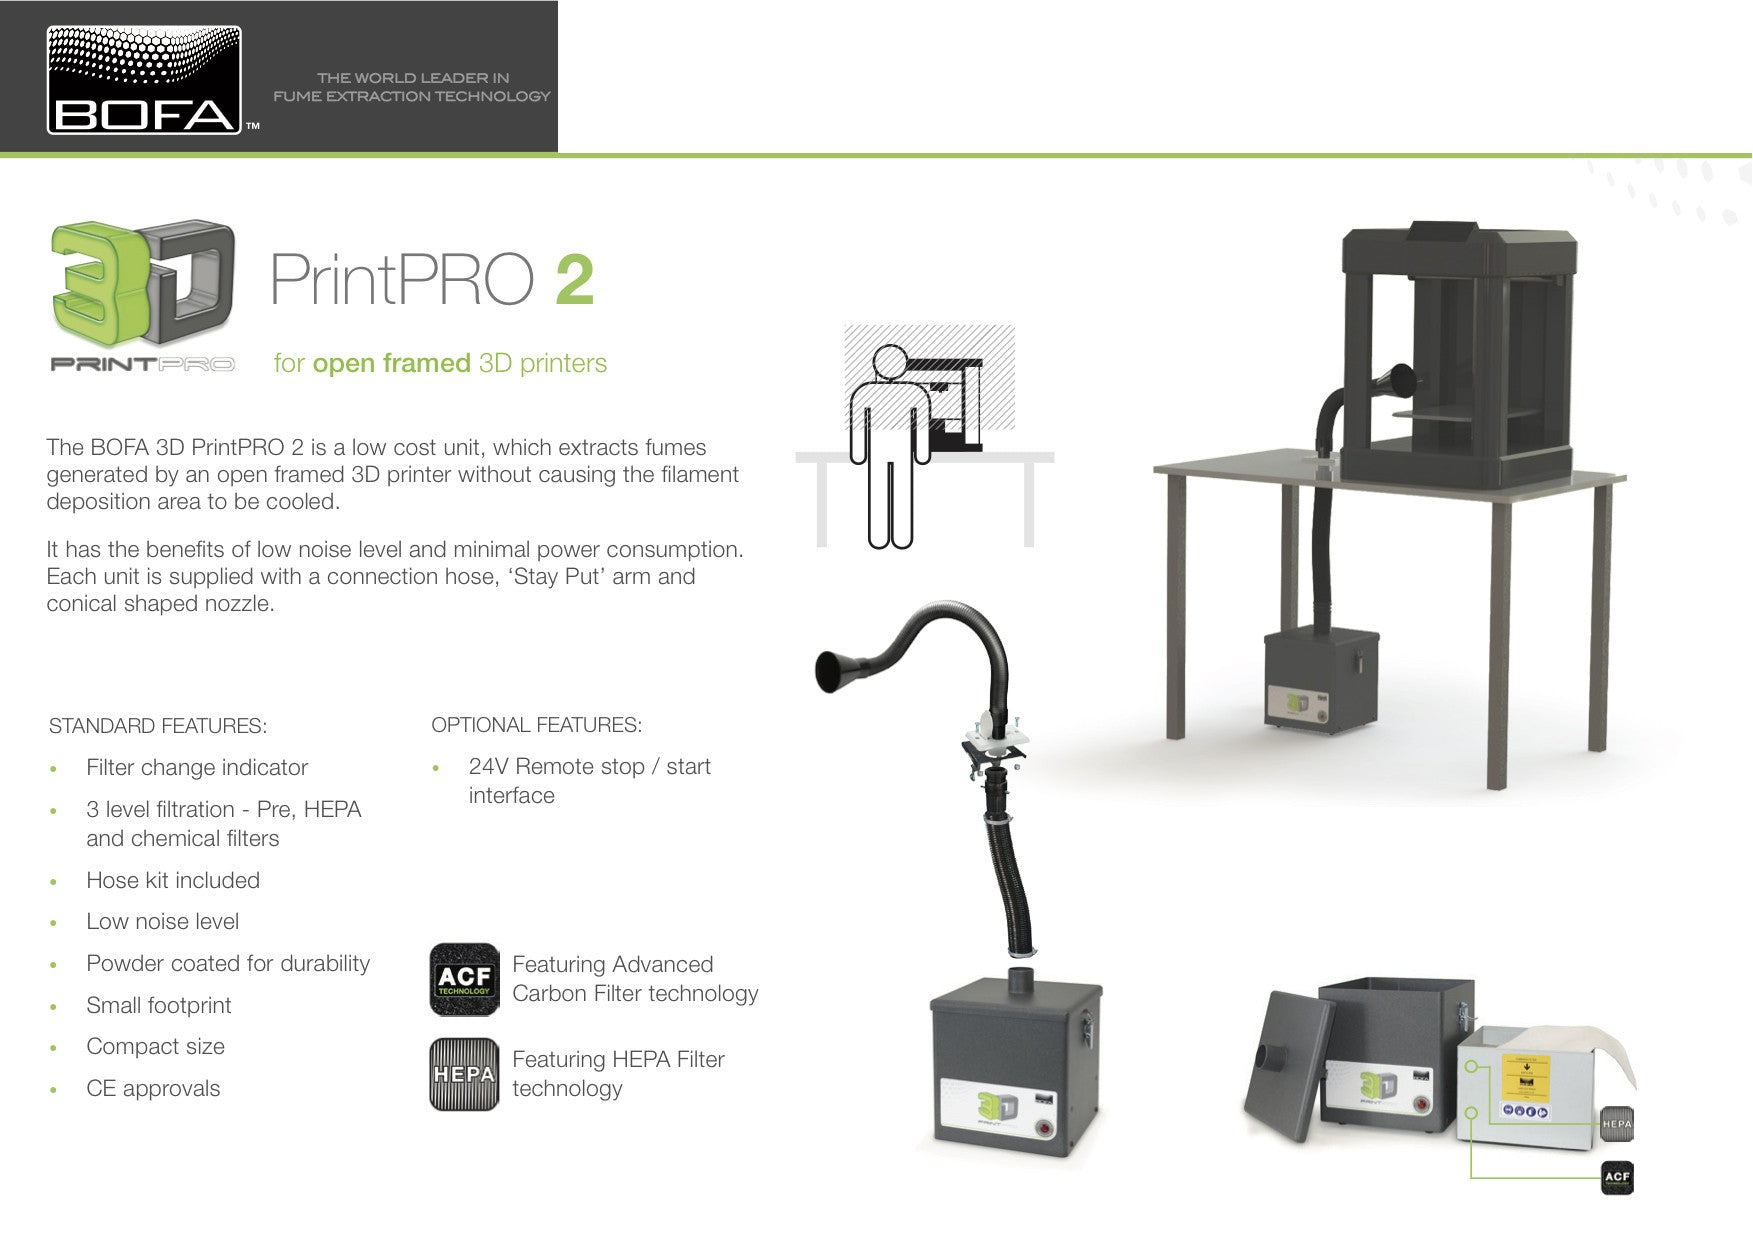 BOFA 3D printpro 2 - 3D printing fume extraction and filtration systems